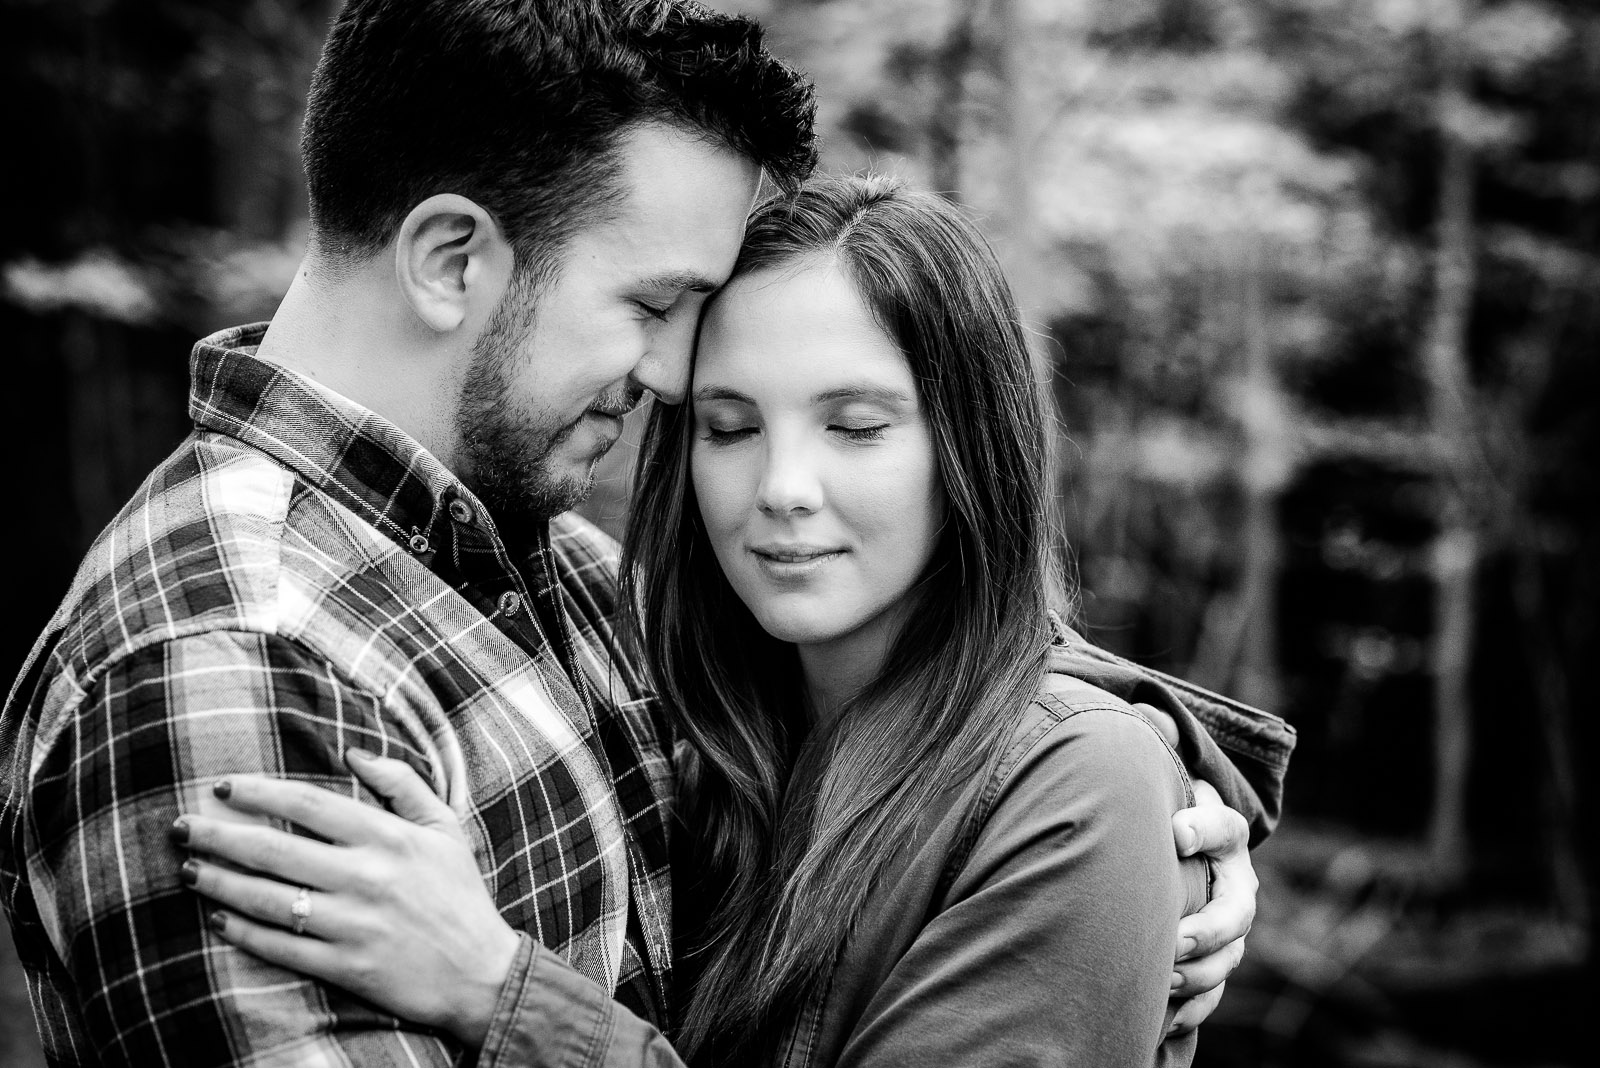 Eric_and_Christy_Photography_Blog_Stephanie_Nick_Engagement-24